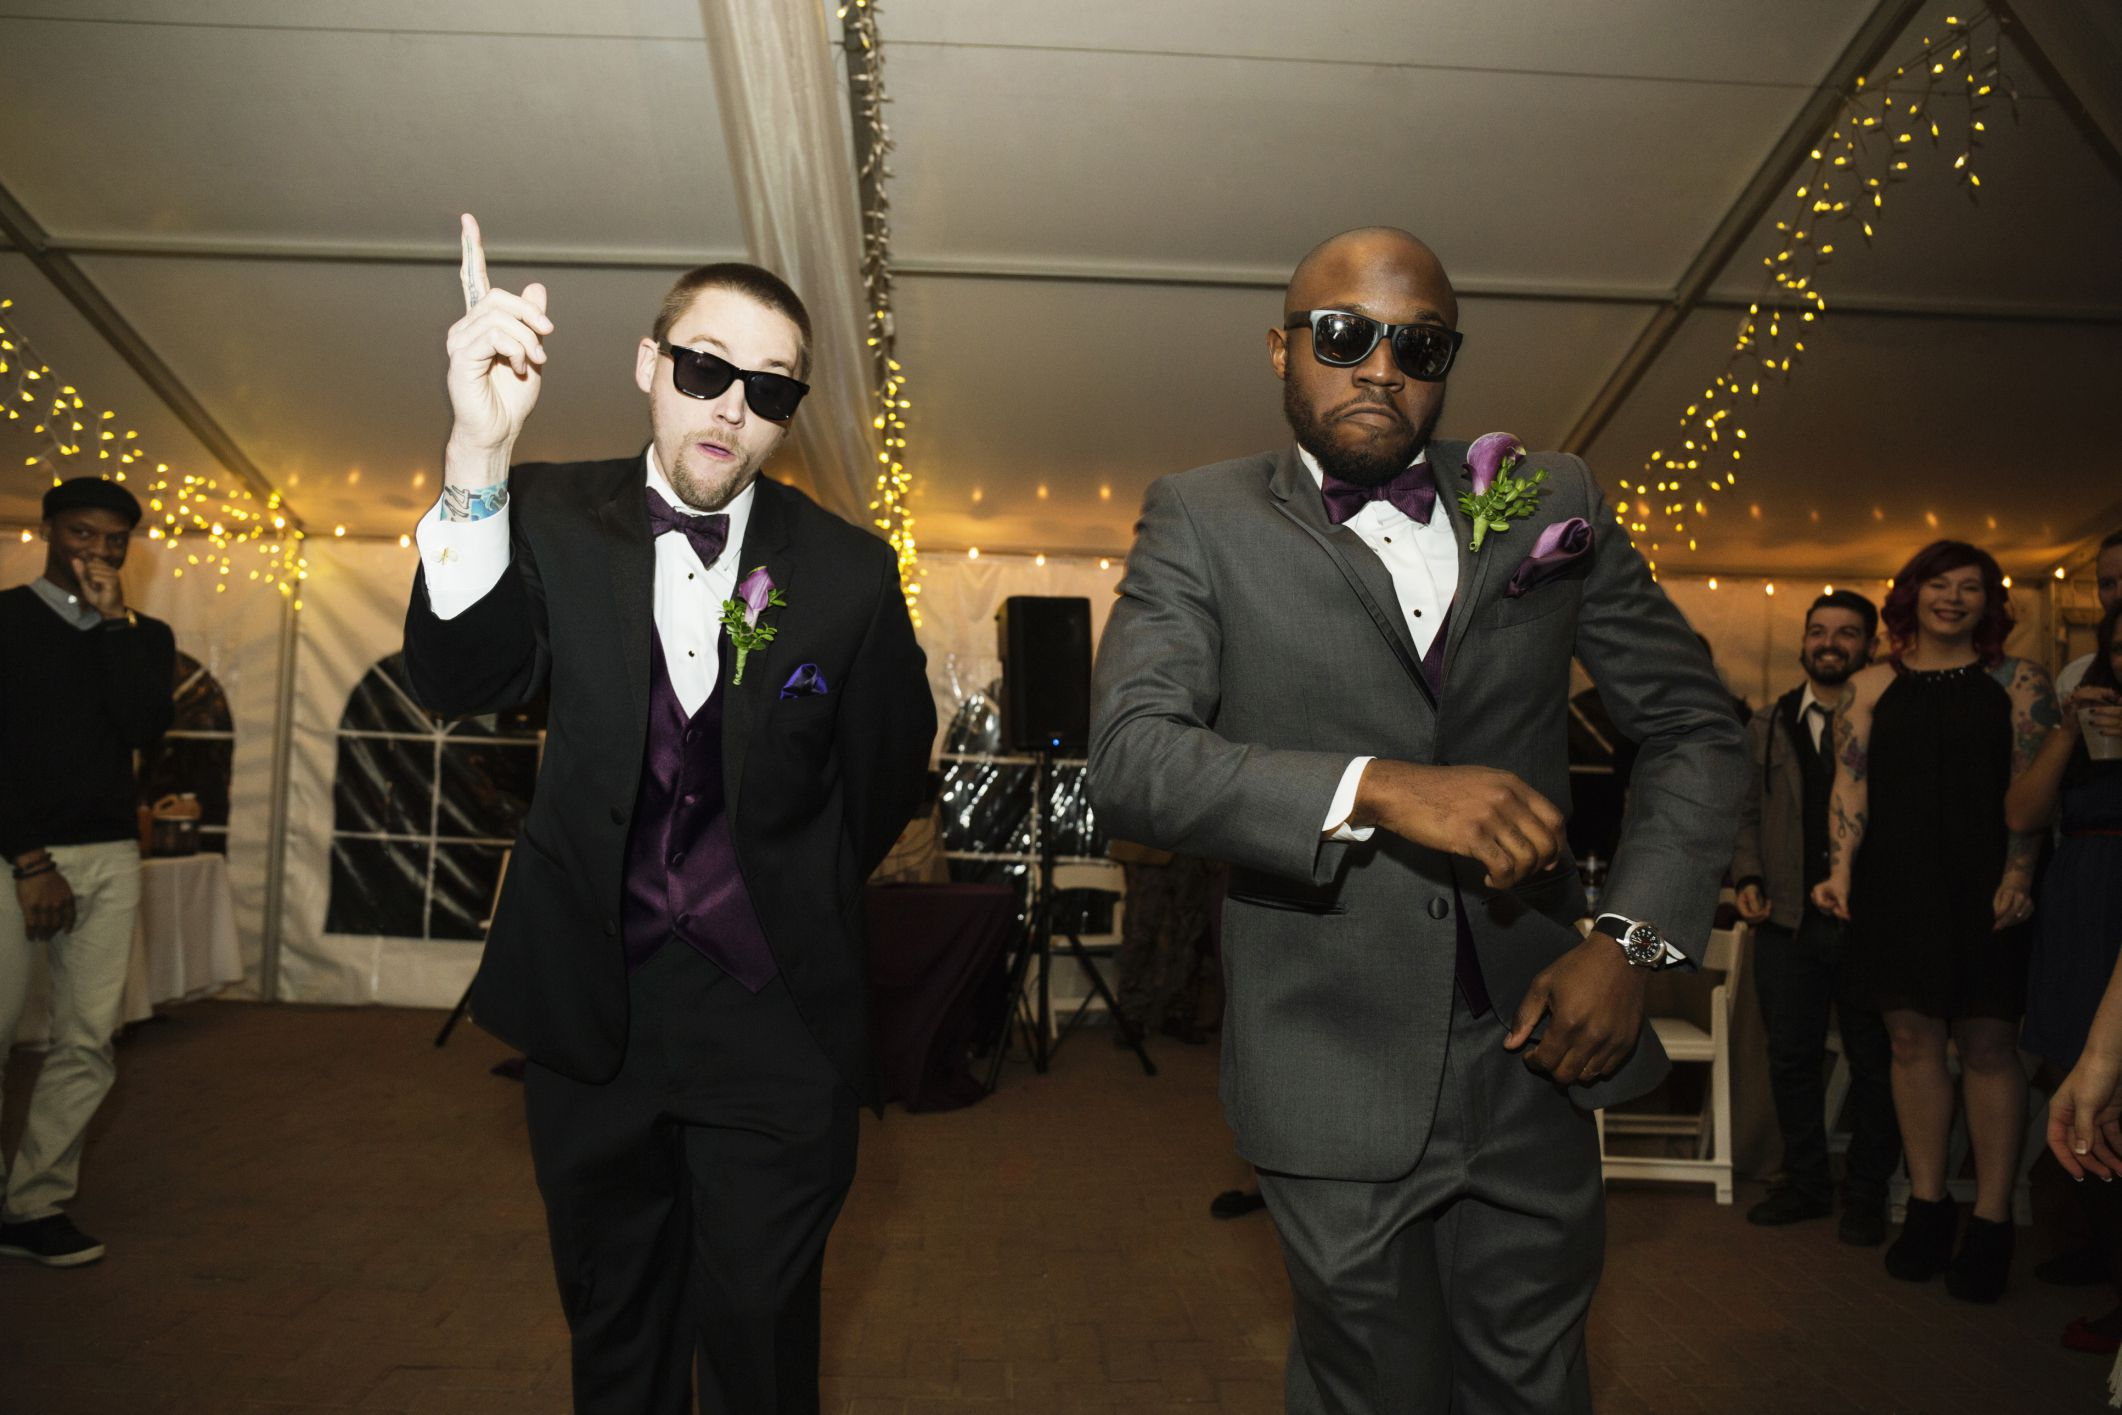 Fun Wedding Reception Songs That Will Get Your Guests Dancing